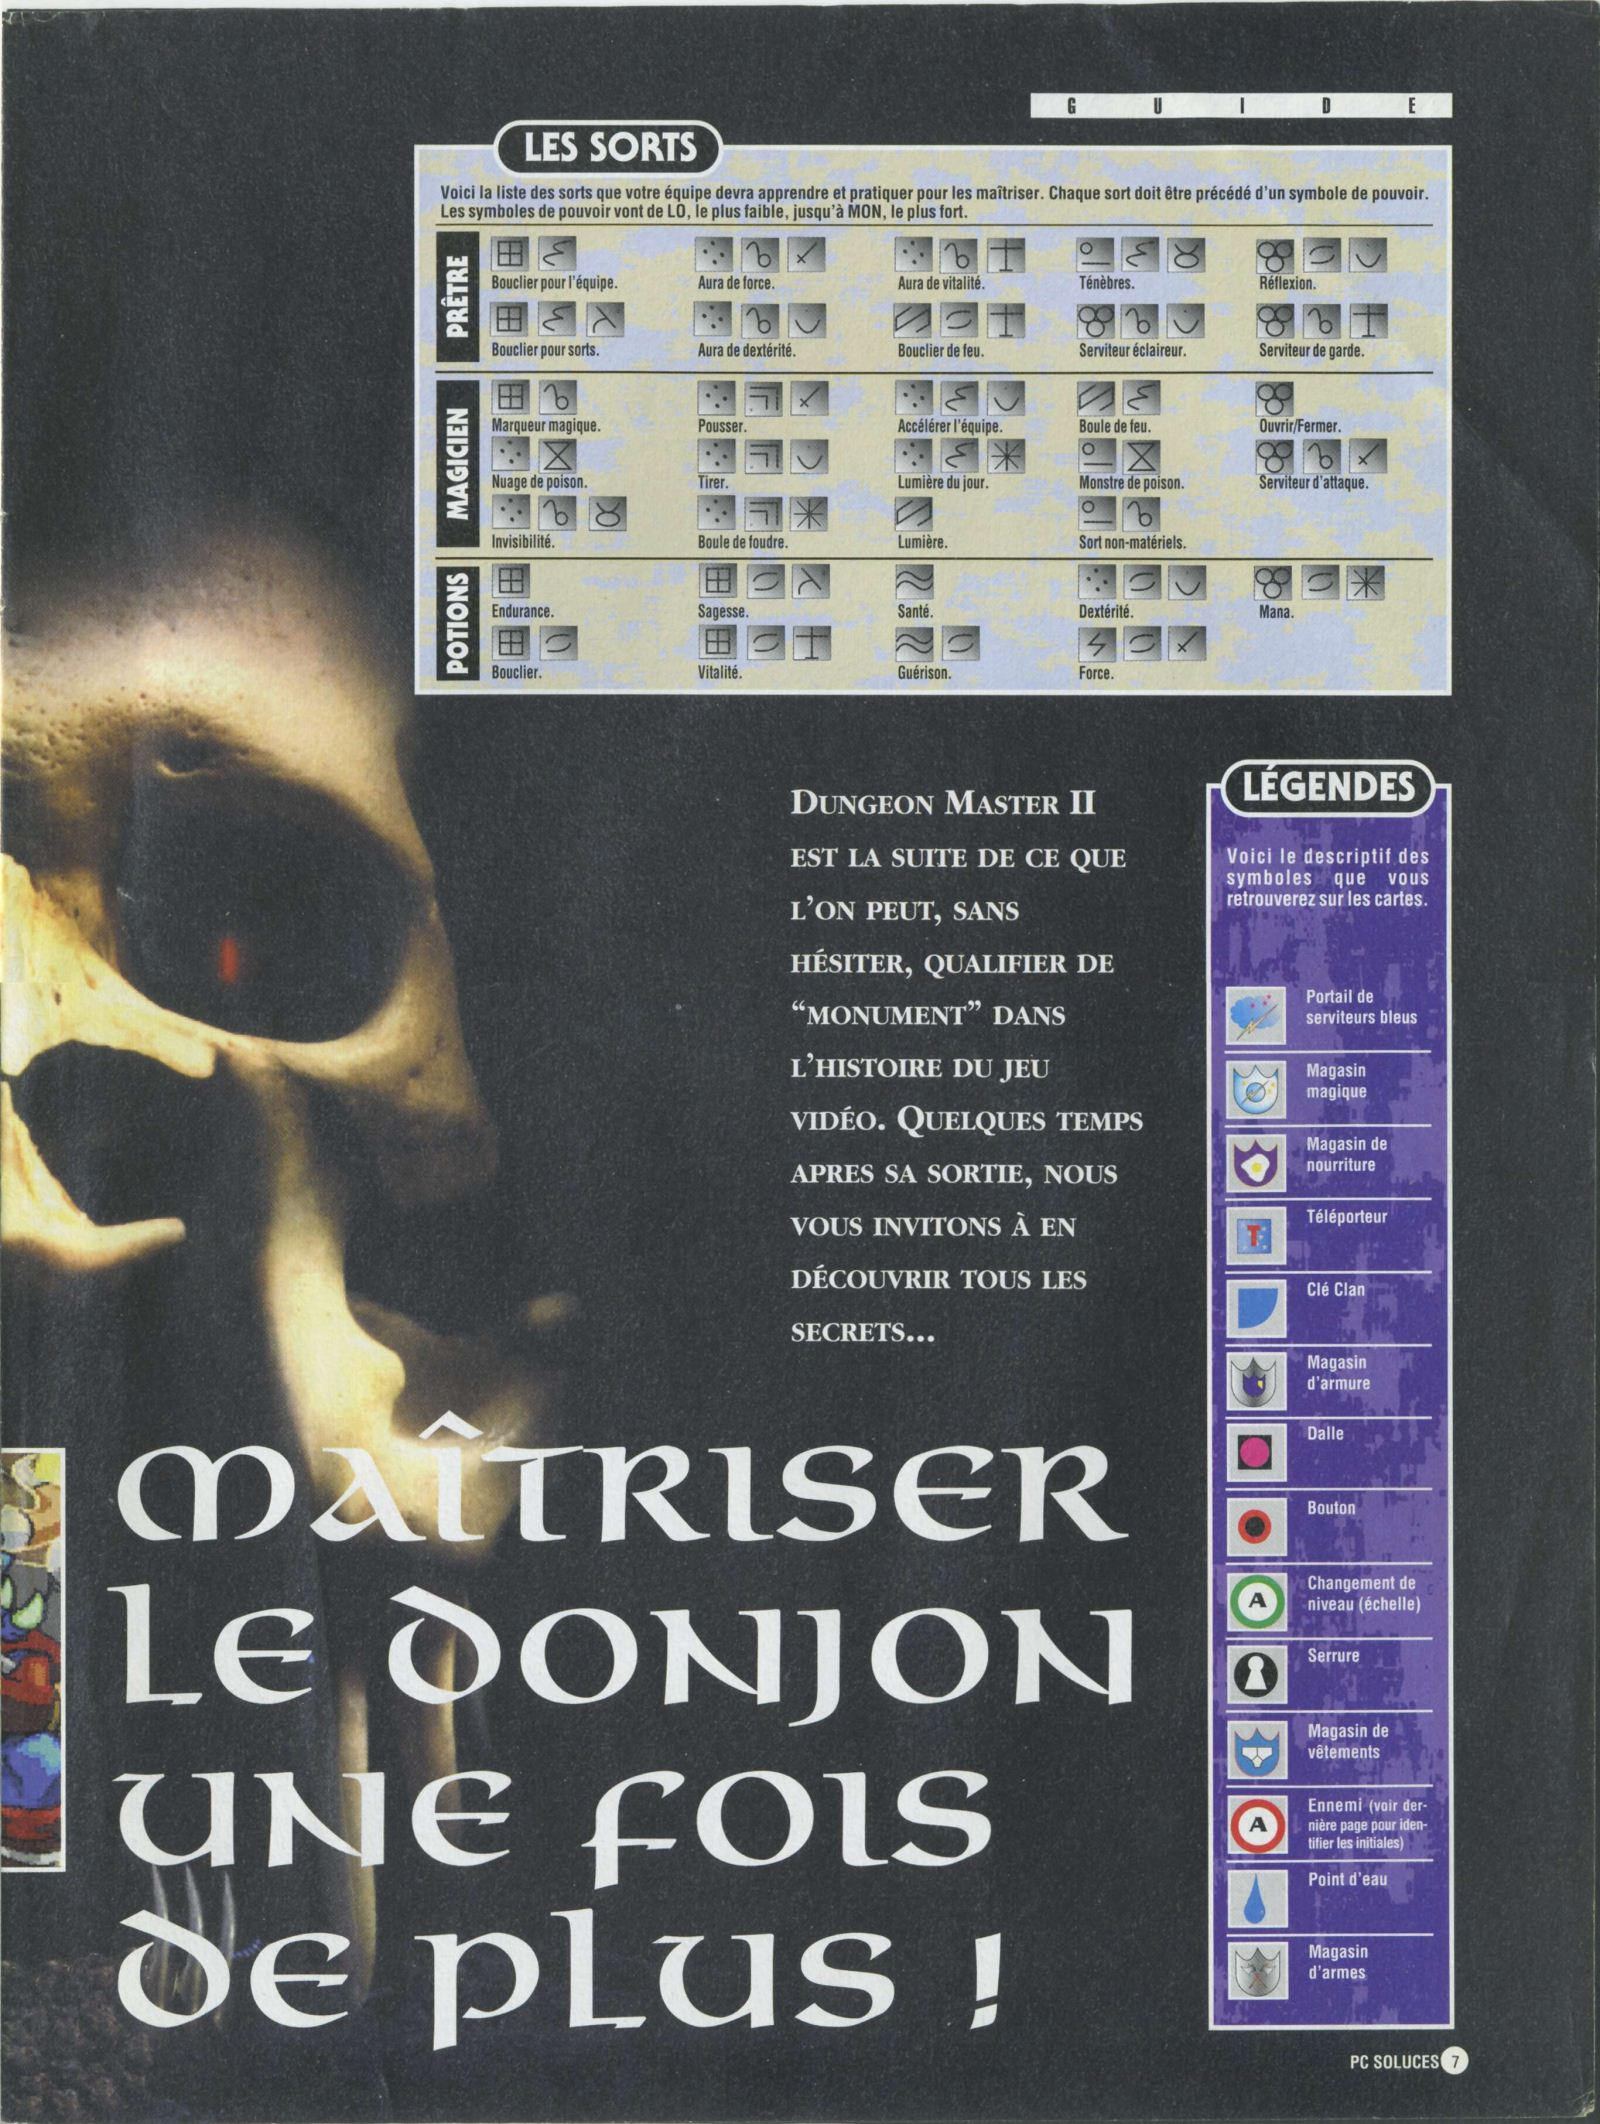 Dungeon Master II solution published in French magazine 'PC Soluces', Issue#1, February-March 1996, Page07